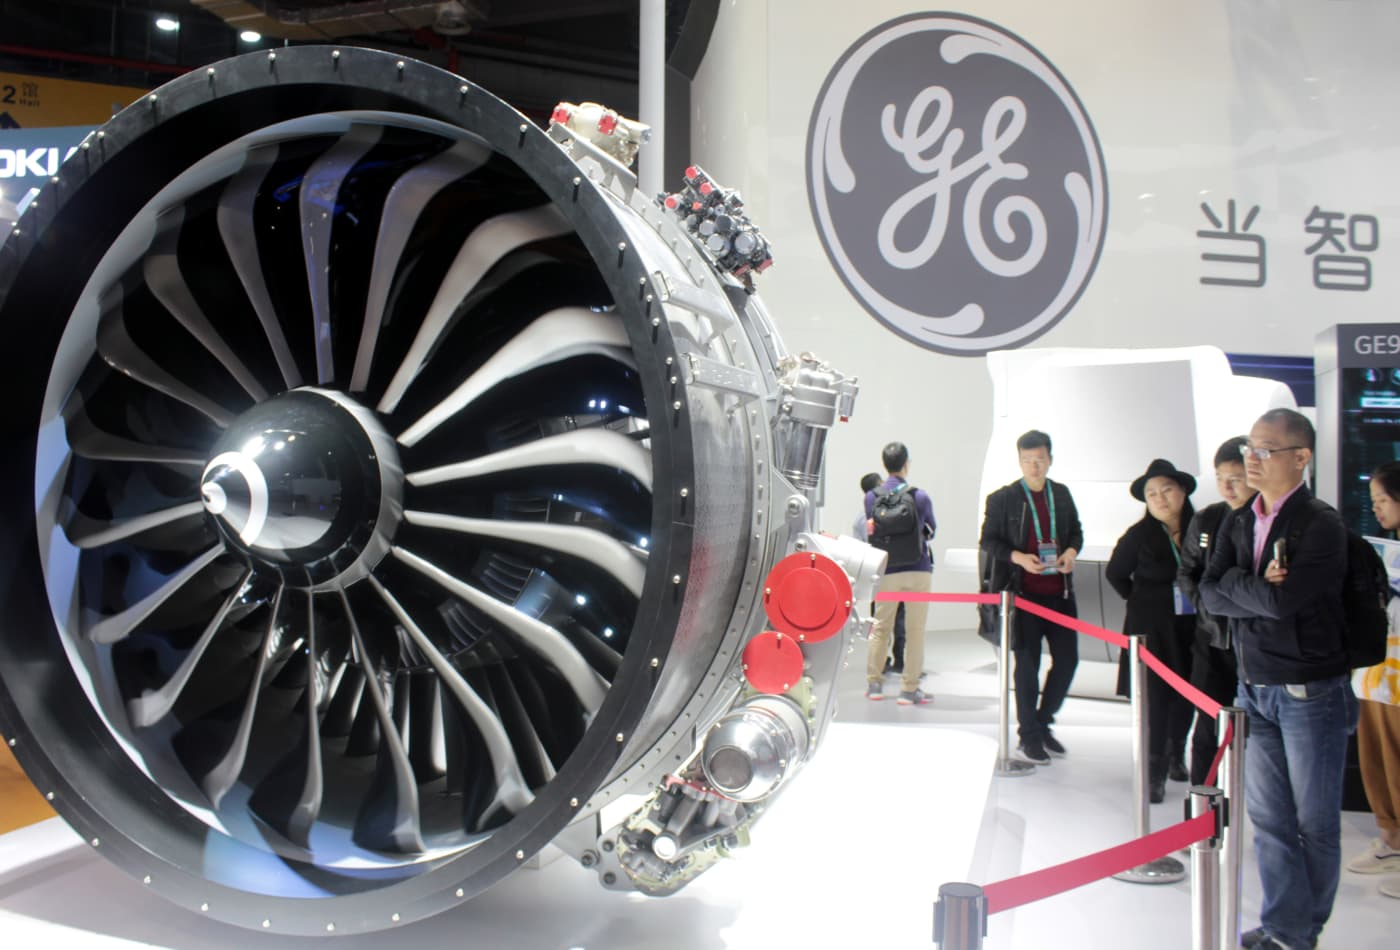 GE is a 'total winner,' unless Boeing fails to fix its 737 Max issue, Jim Cramer says